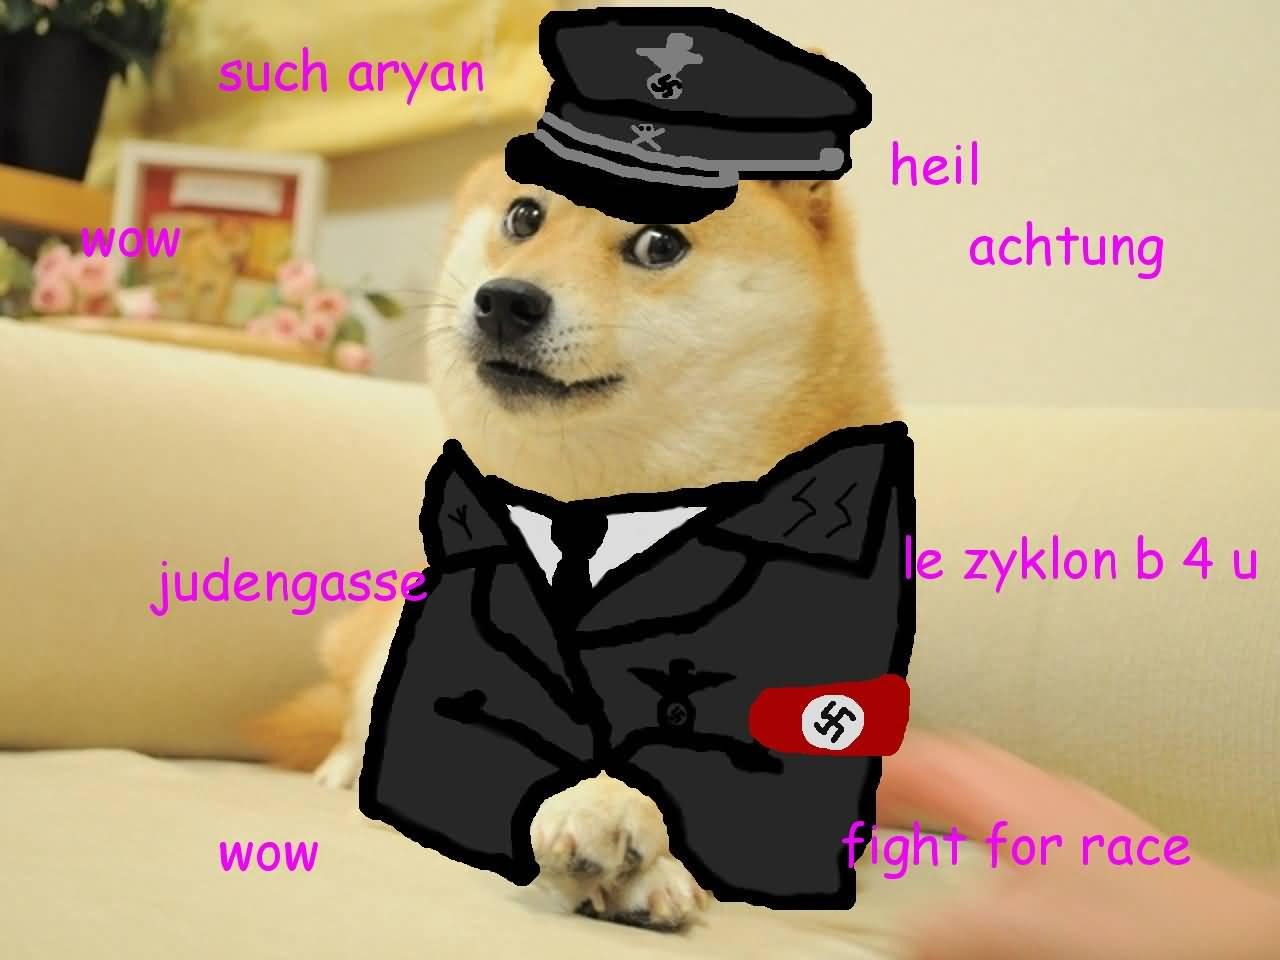 such Aryan wow heil achtung judengasse doge meme